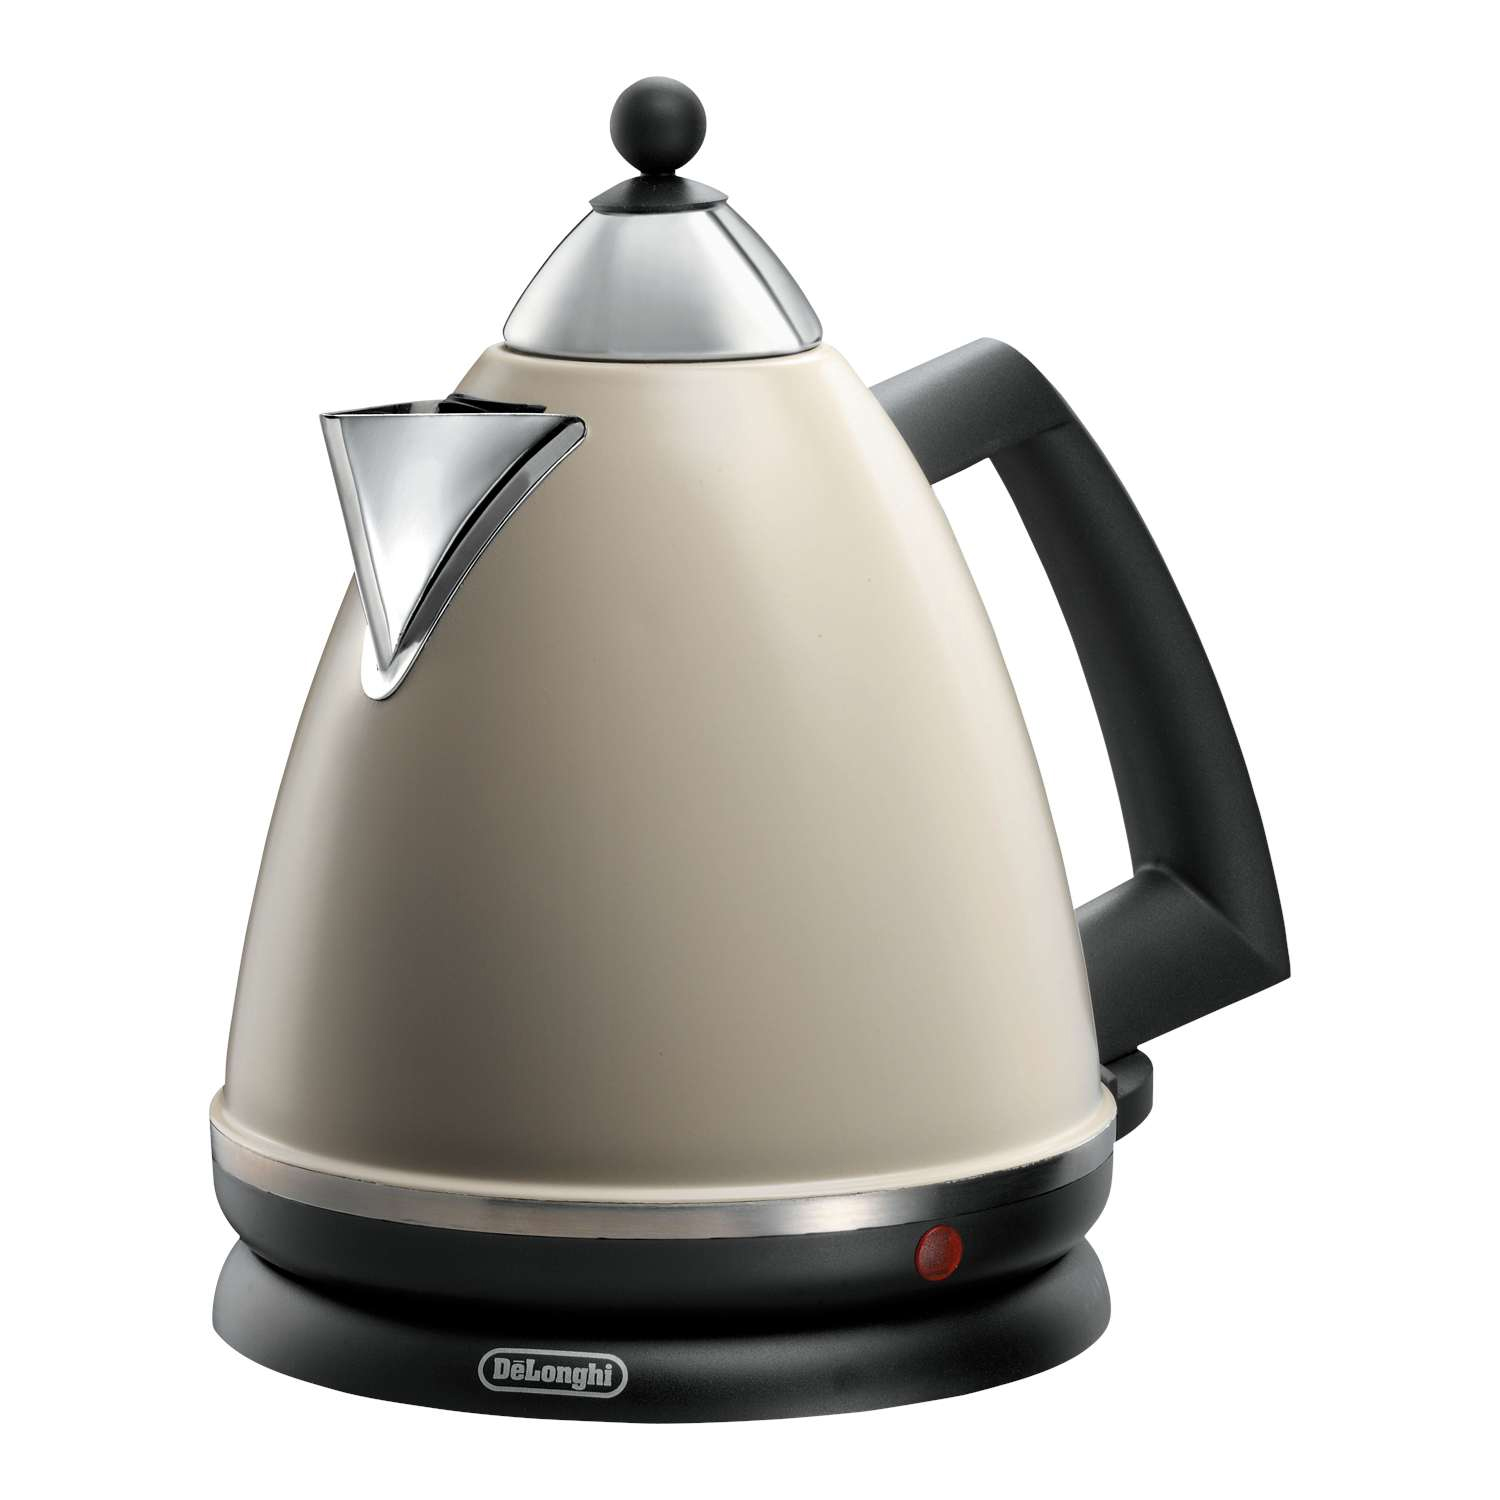 Toaster And Kettle, Delonghi Toaster And Kettle Set